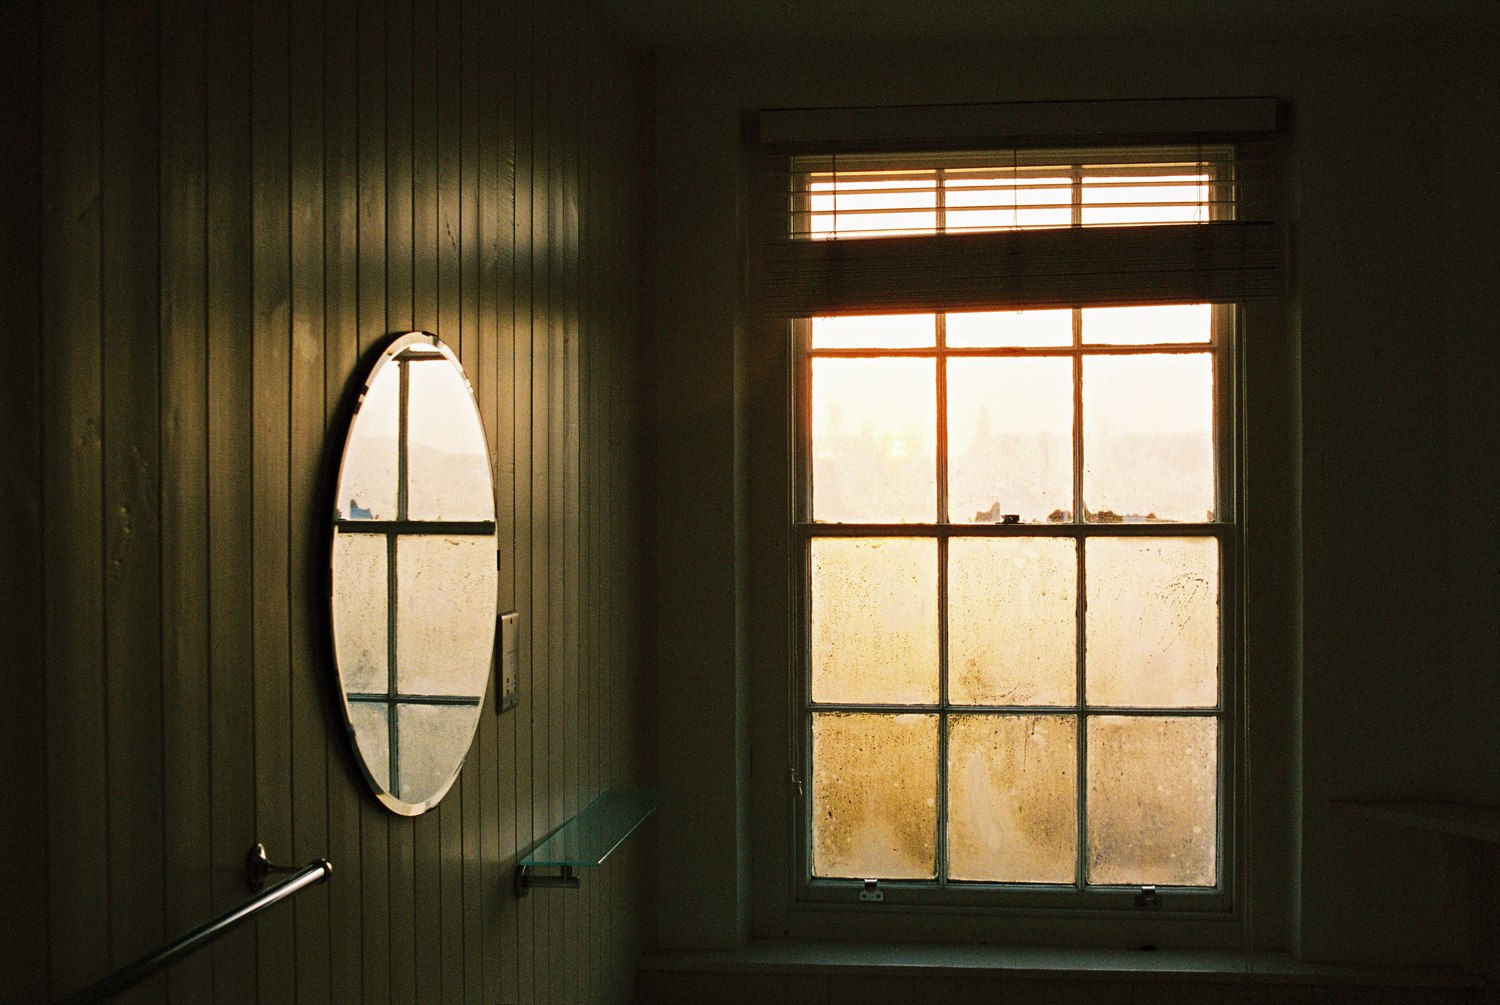 09_morning_mirror_window.jpg